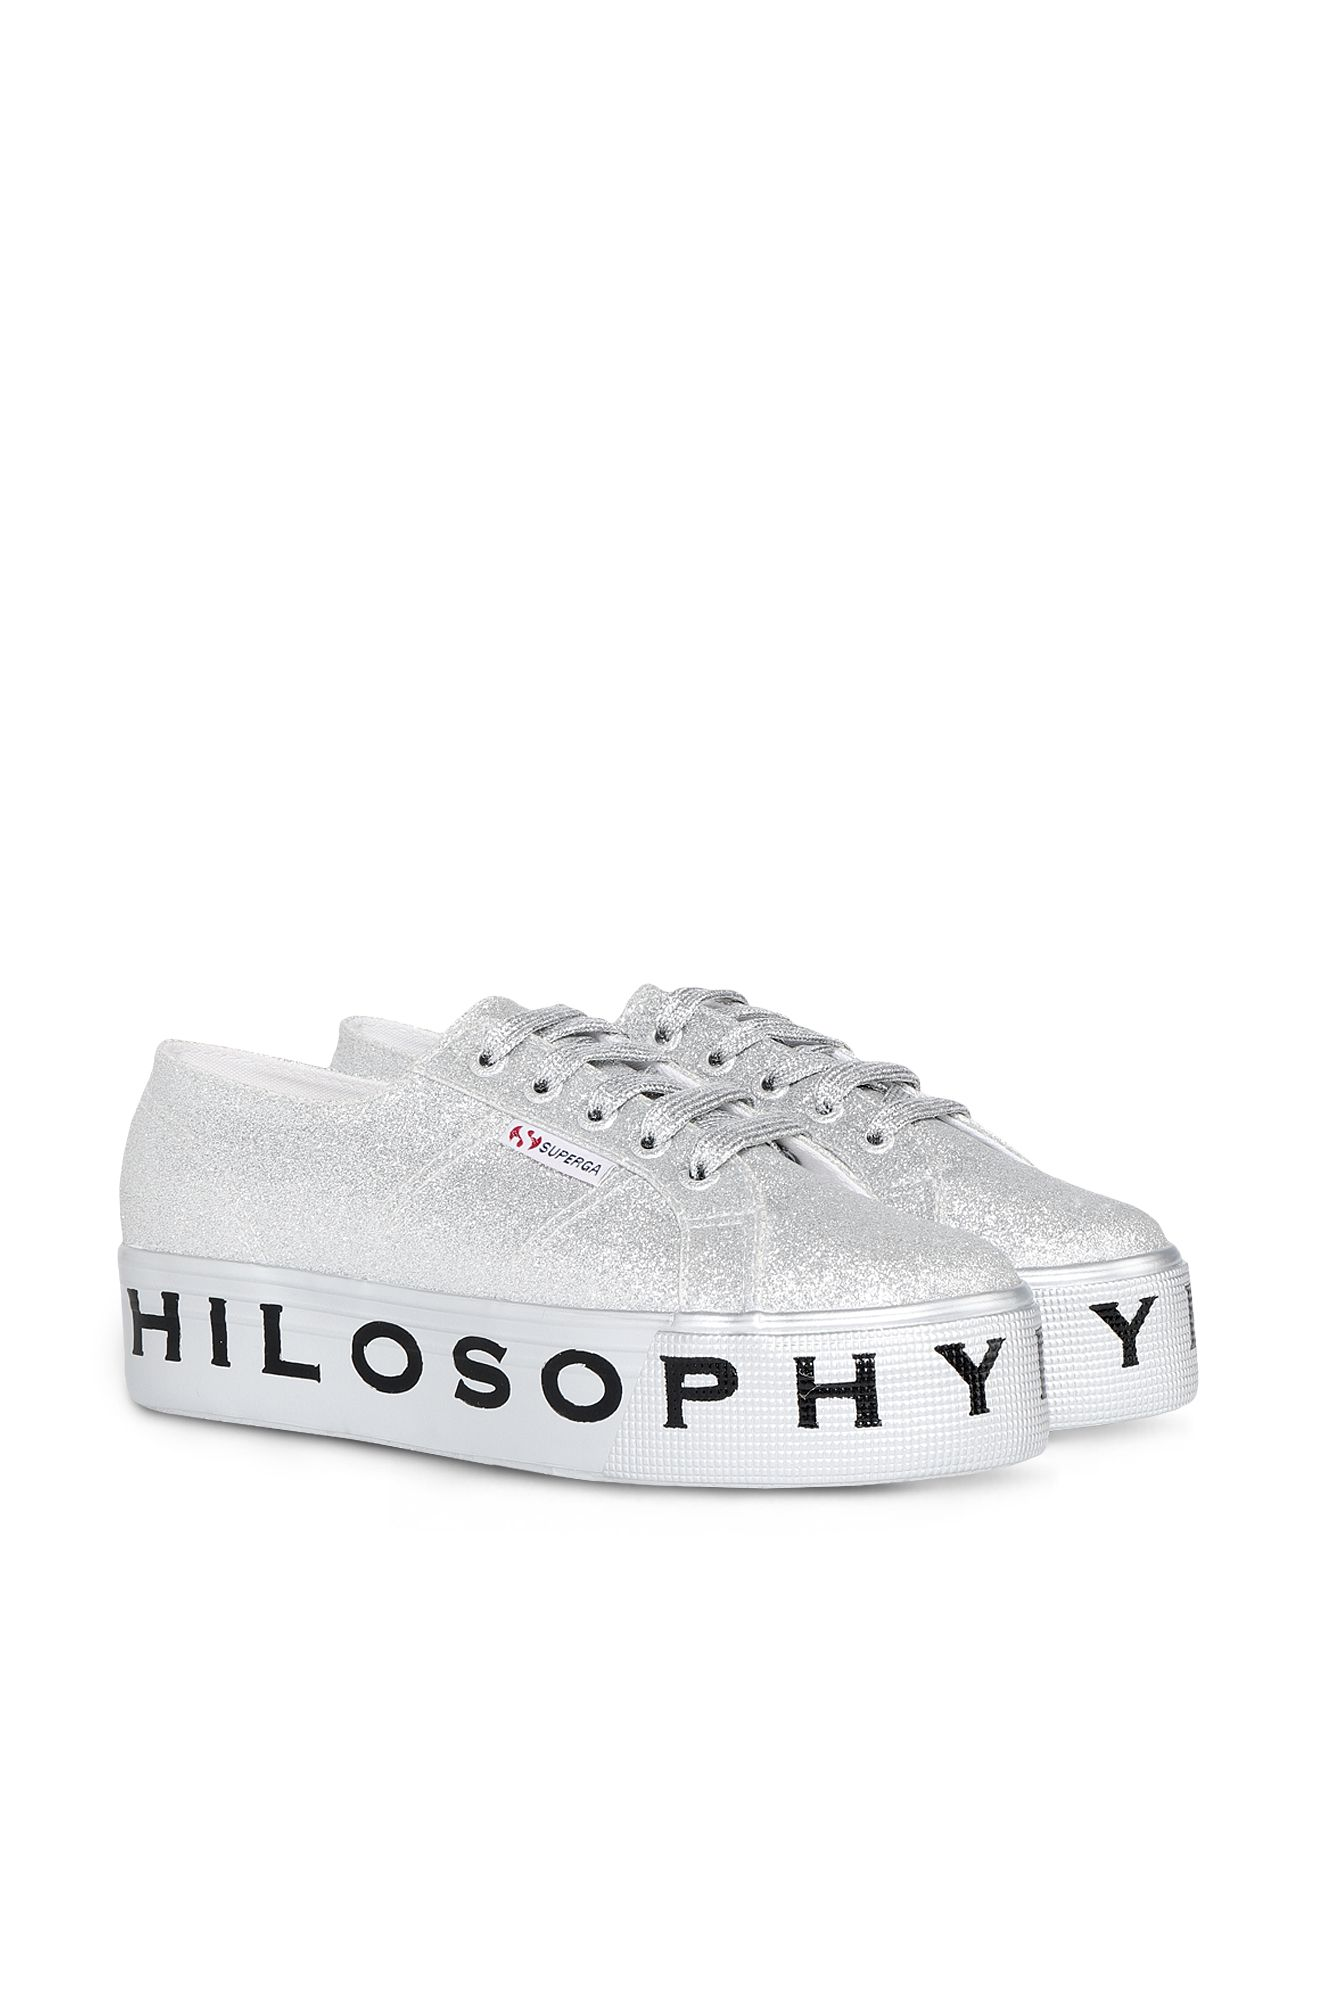 SUPERGA FOR PHILOSOPHY